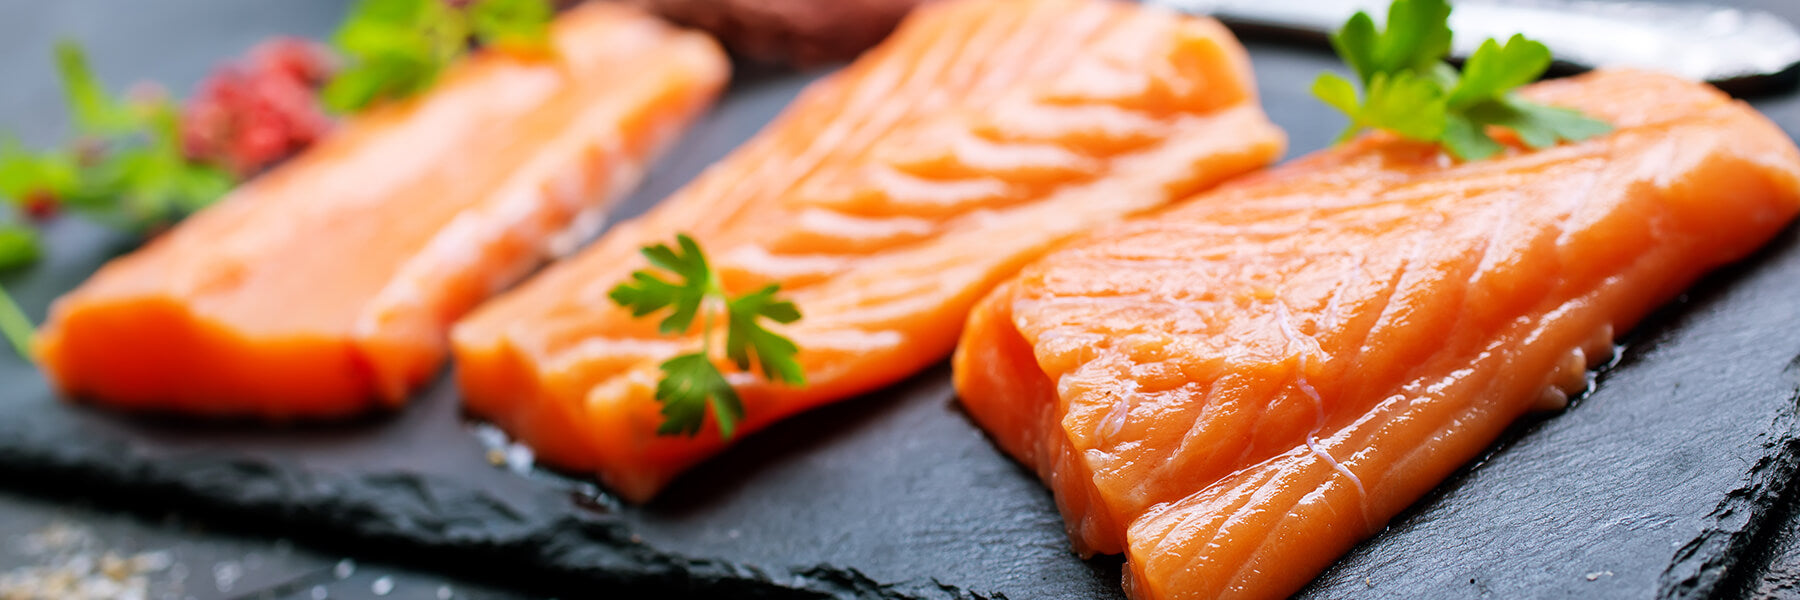 Best Fish to Eat: Healthy Options